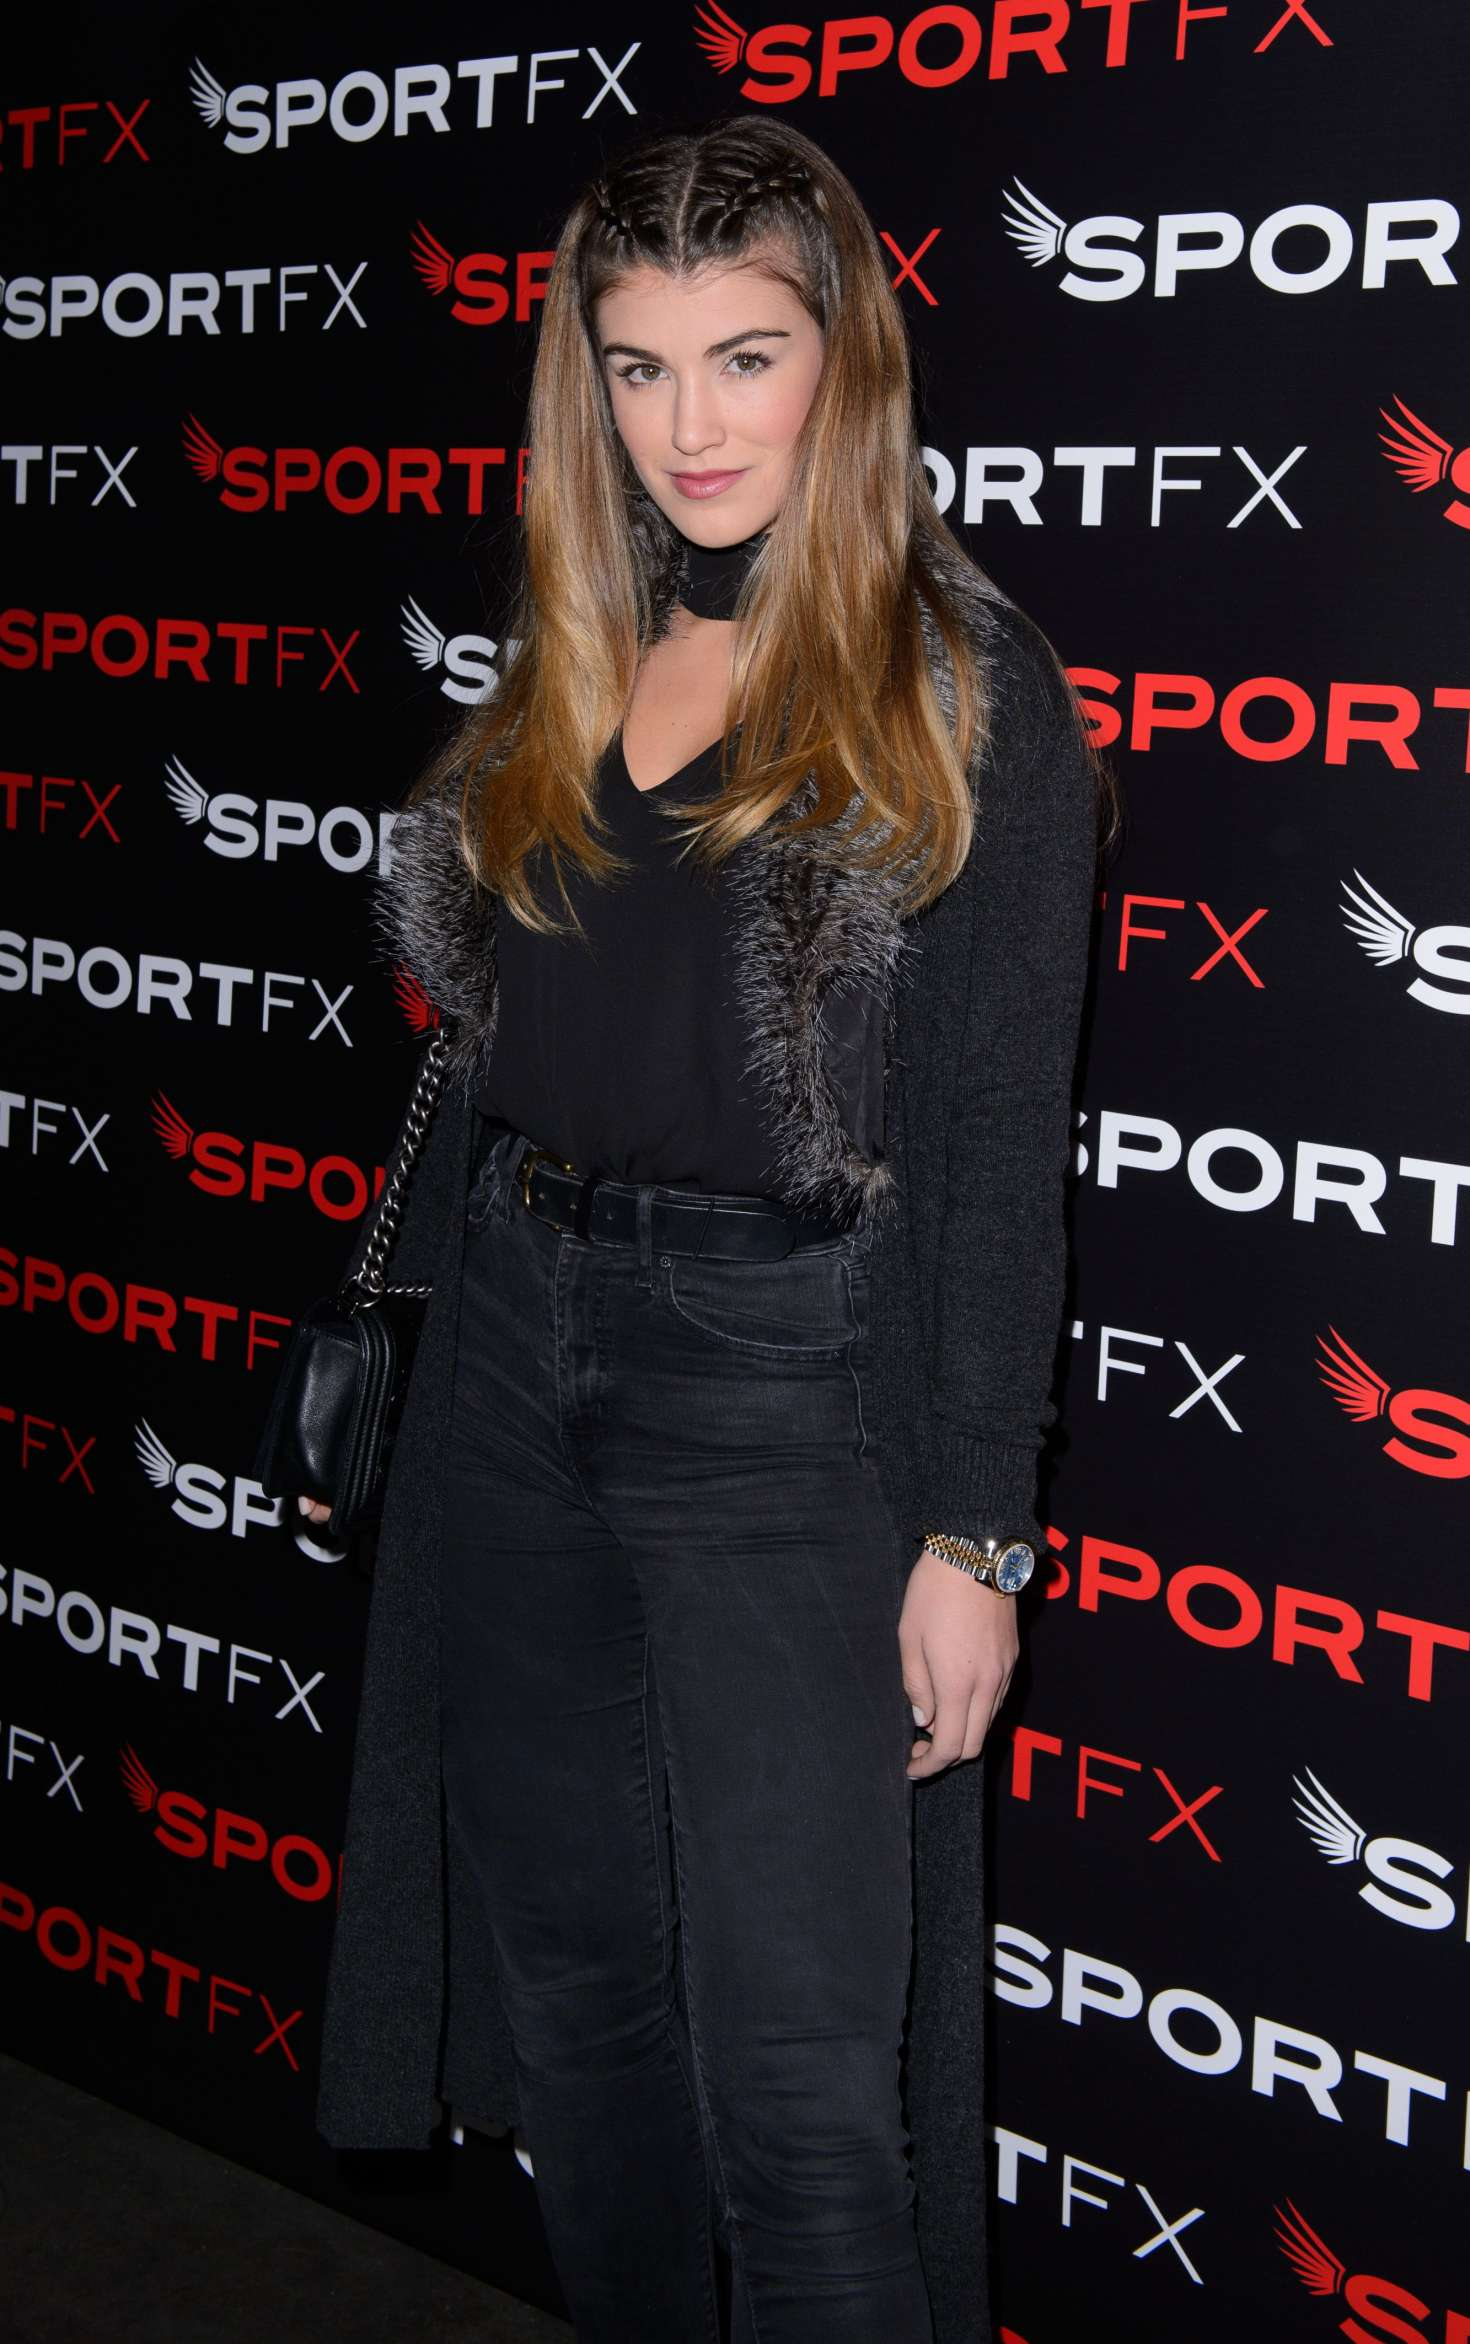 Amy Willerton - SPORTFX Cosmetic and Sports Launch Party in London